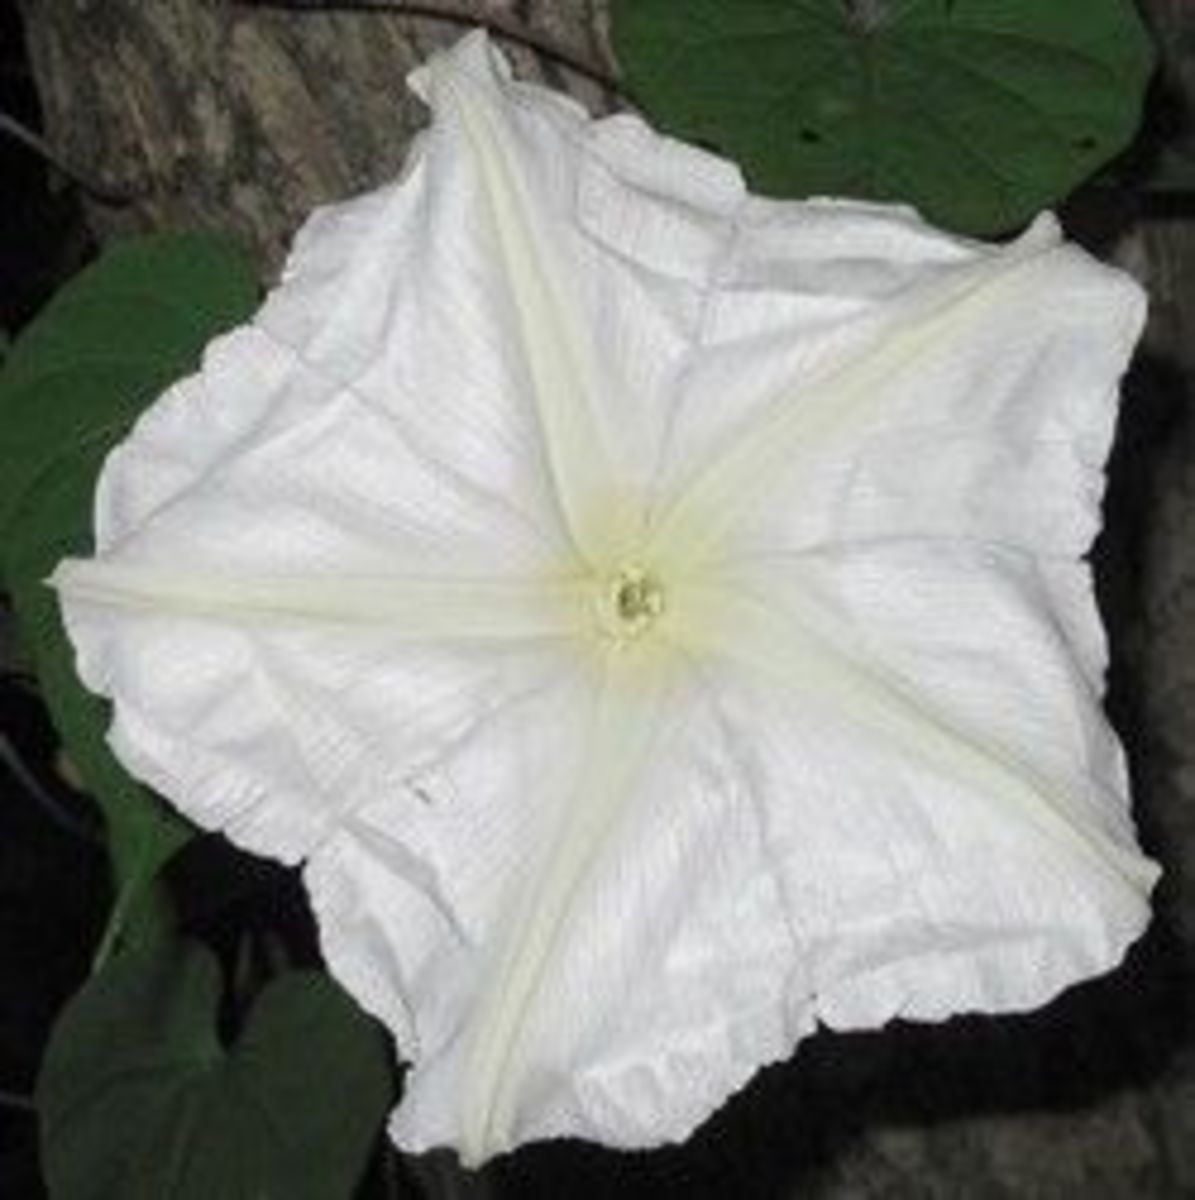 A moonflower, Ipomoea alba, photographed at night.